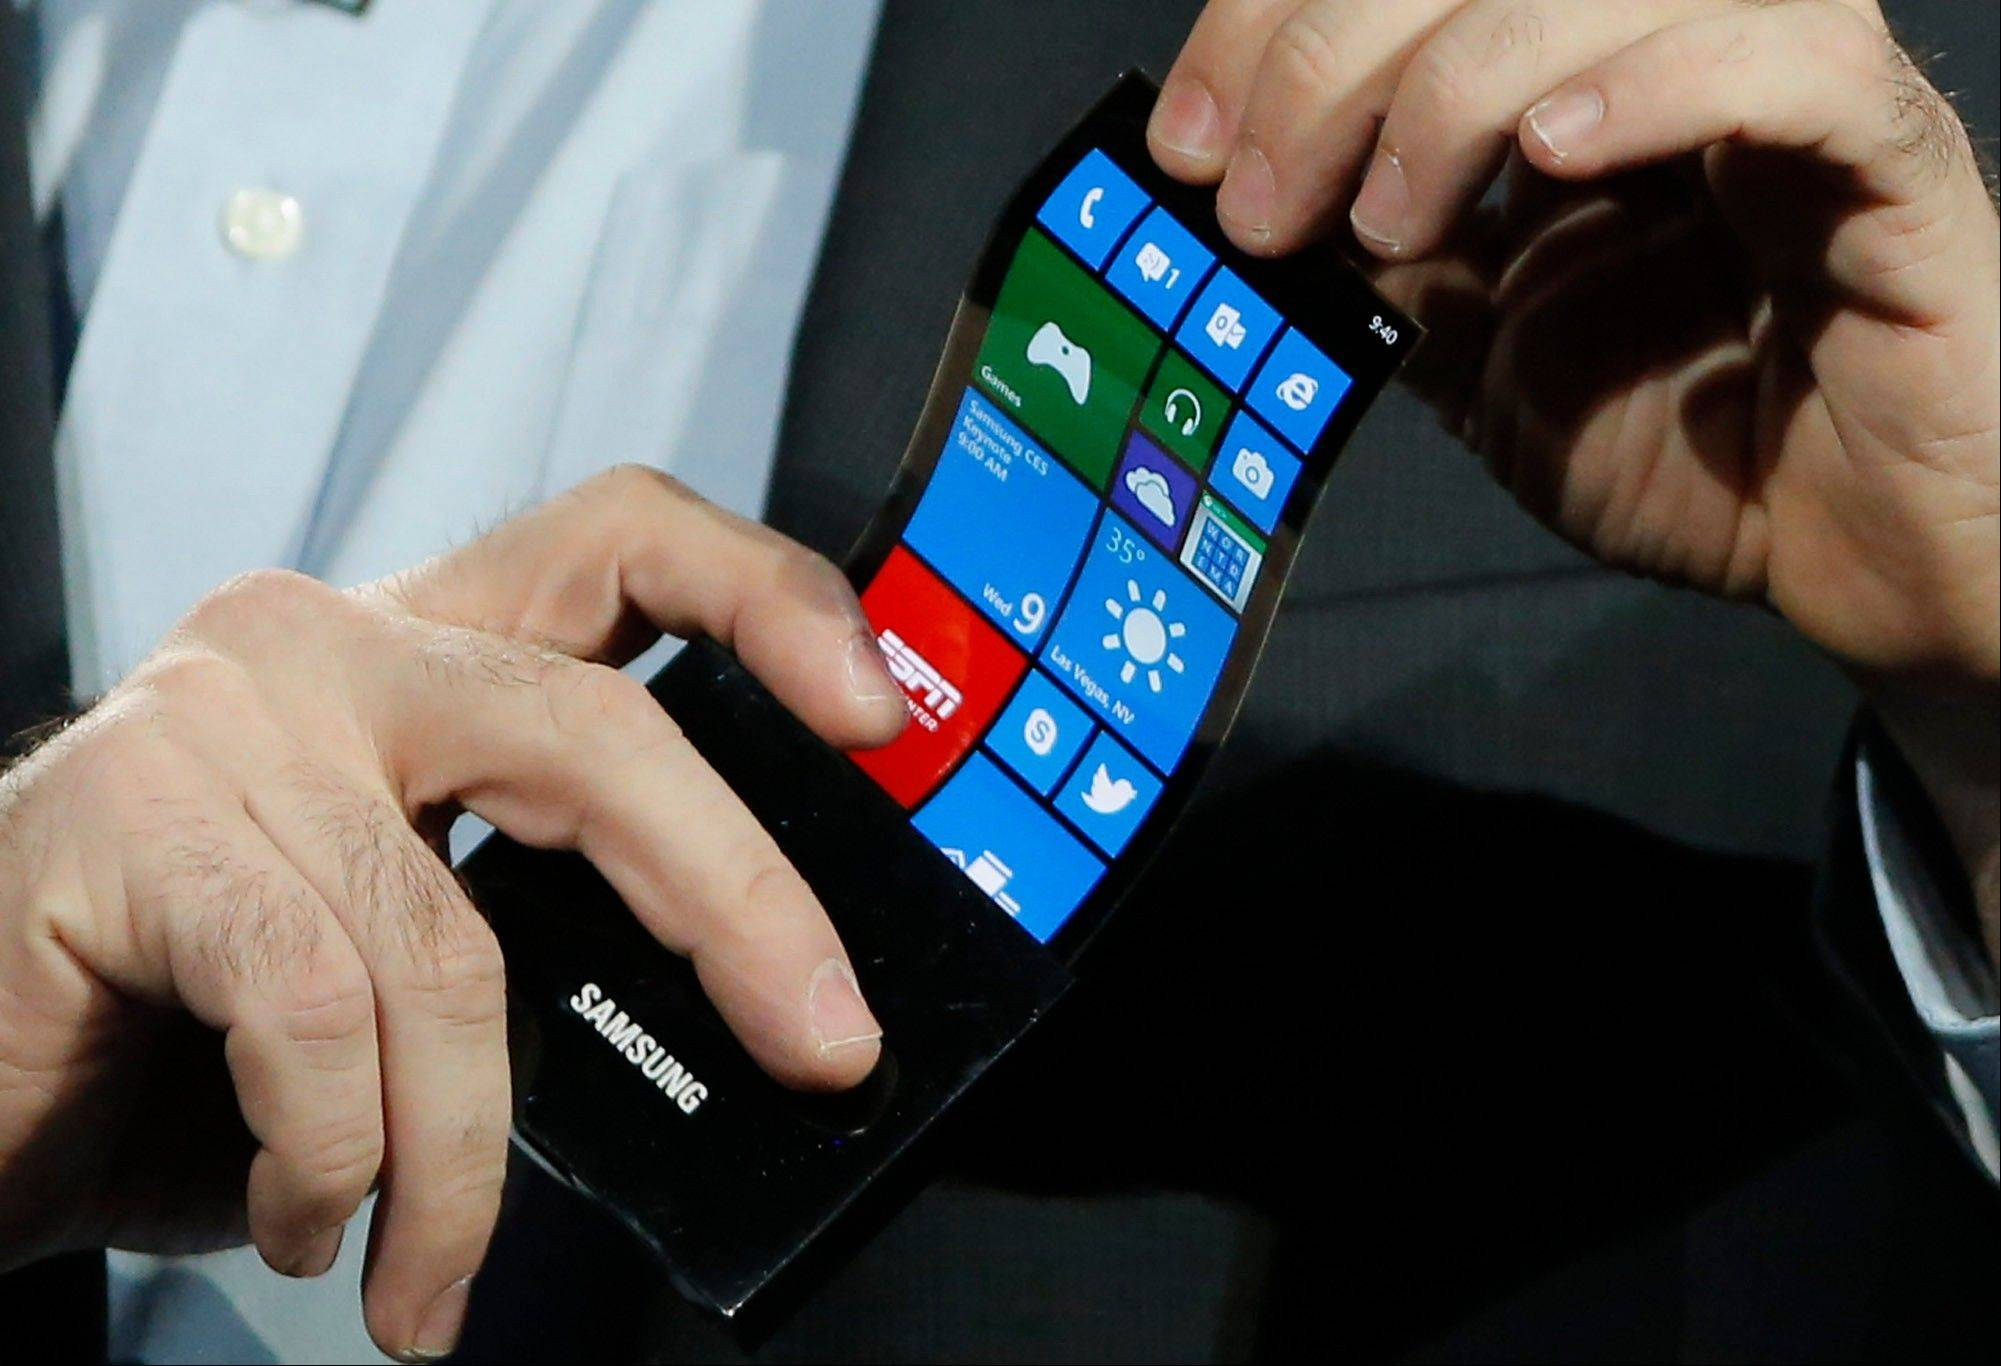 Eric Rudder, chief technical strategy officer of Microsoft, holds a prototype Windows smartphone with a flexible OLED display during Samsung's keynote address at the International Consumer Electronics Show in Las Vegas, Wednesday, Jan. 9, 2013.